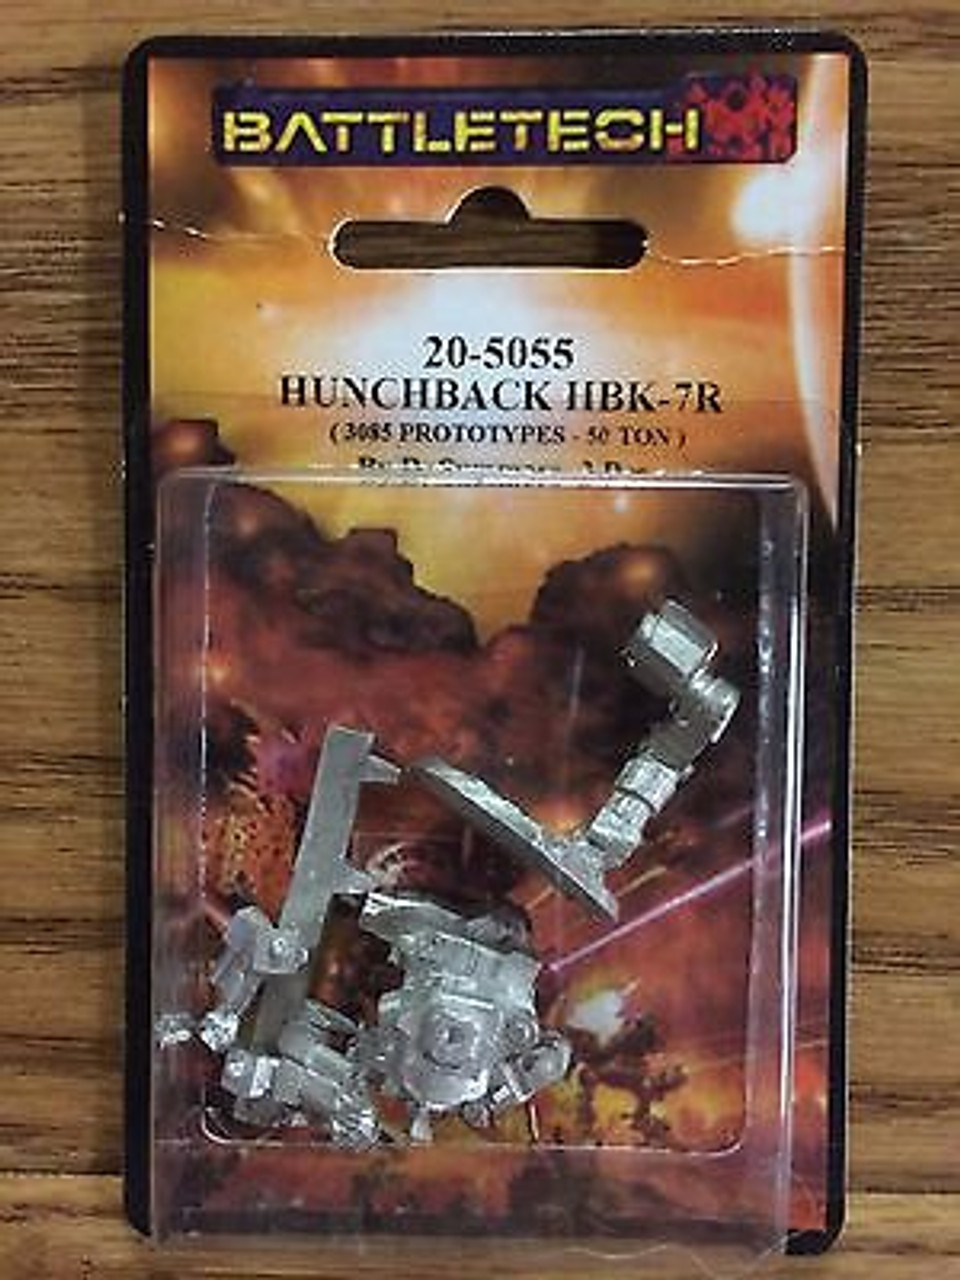 BattleTech Miniatures: Hunchback HBK-7R Mech 20-5055 ADD'L ITEM SHIP FREE